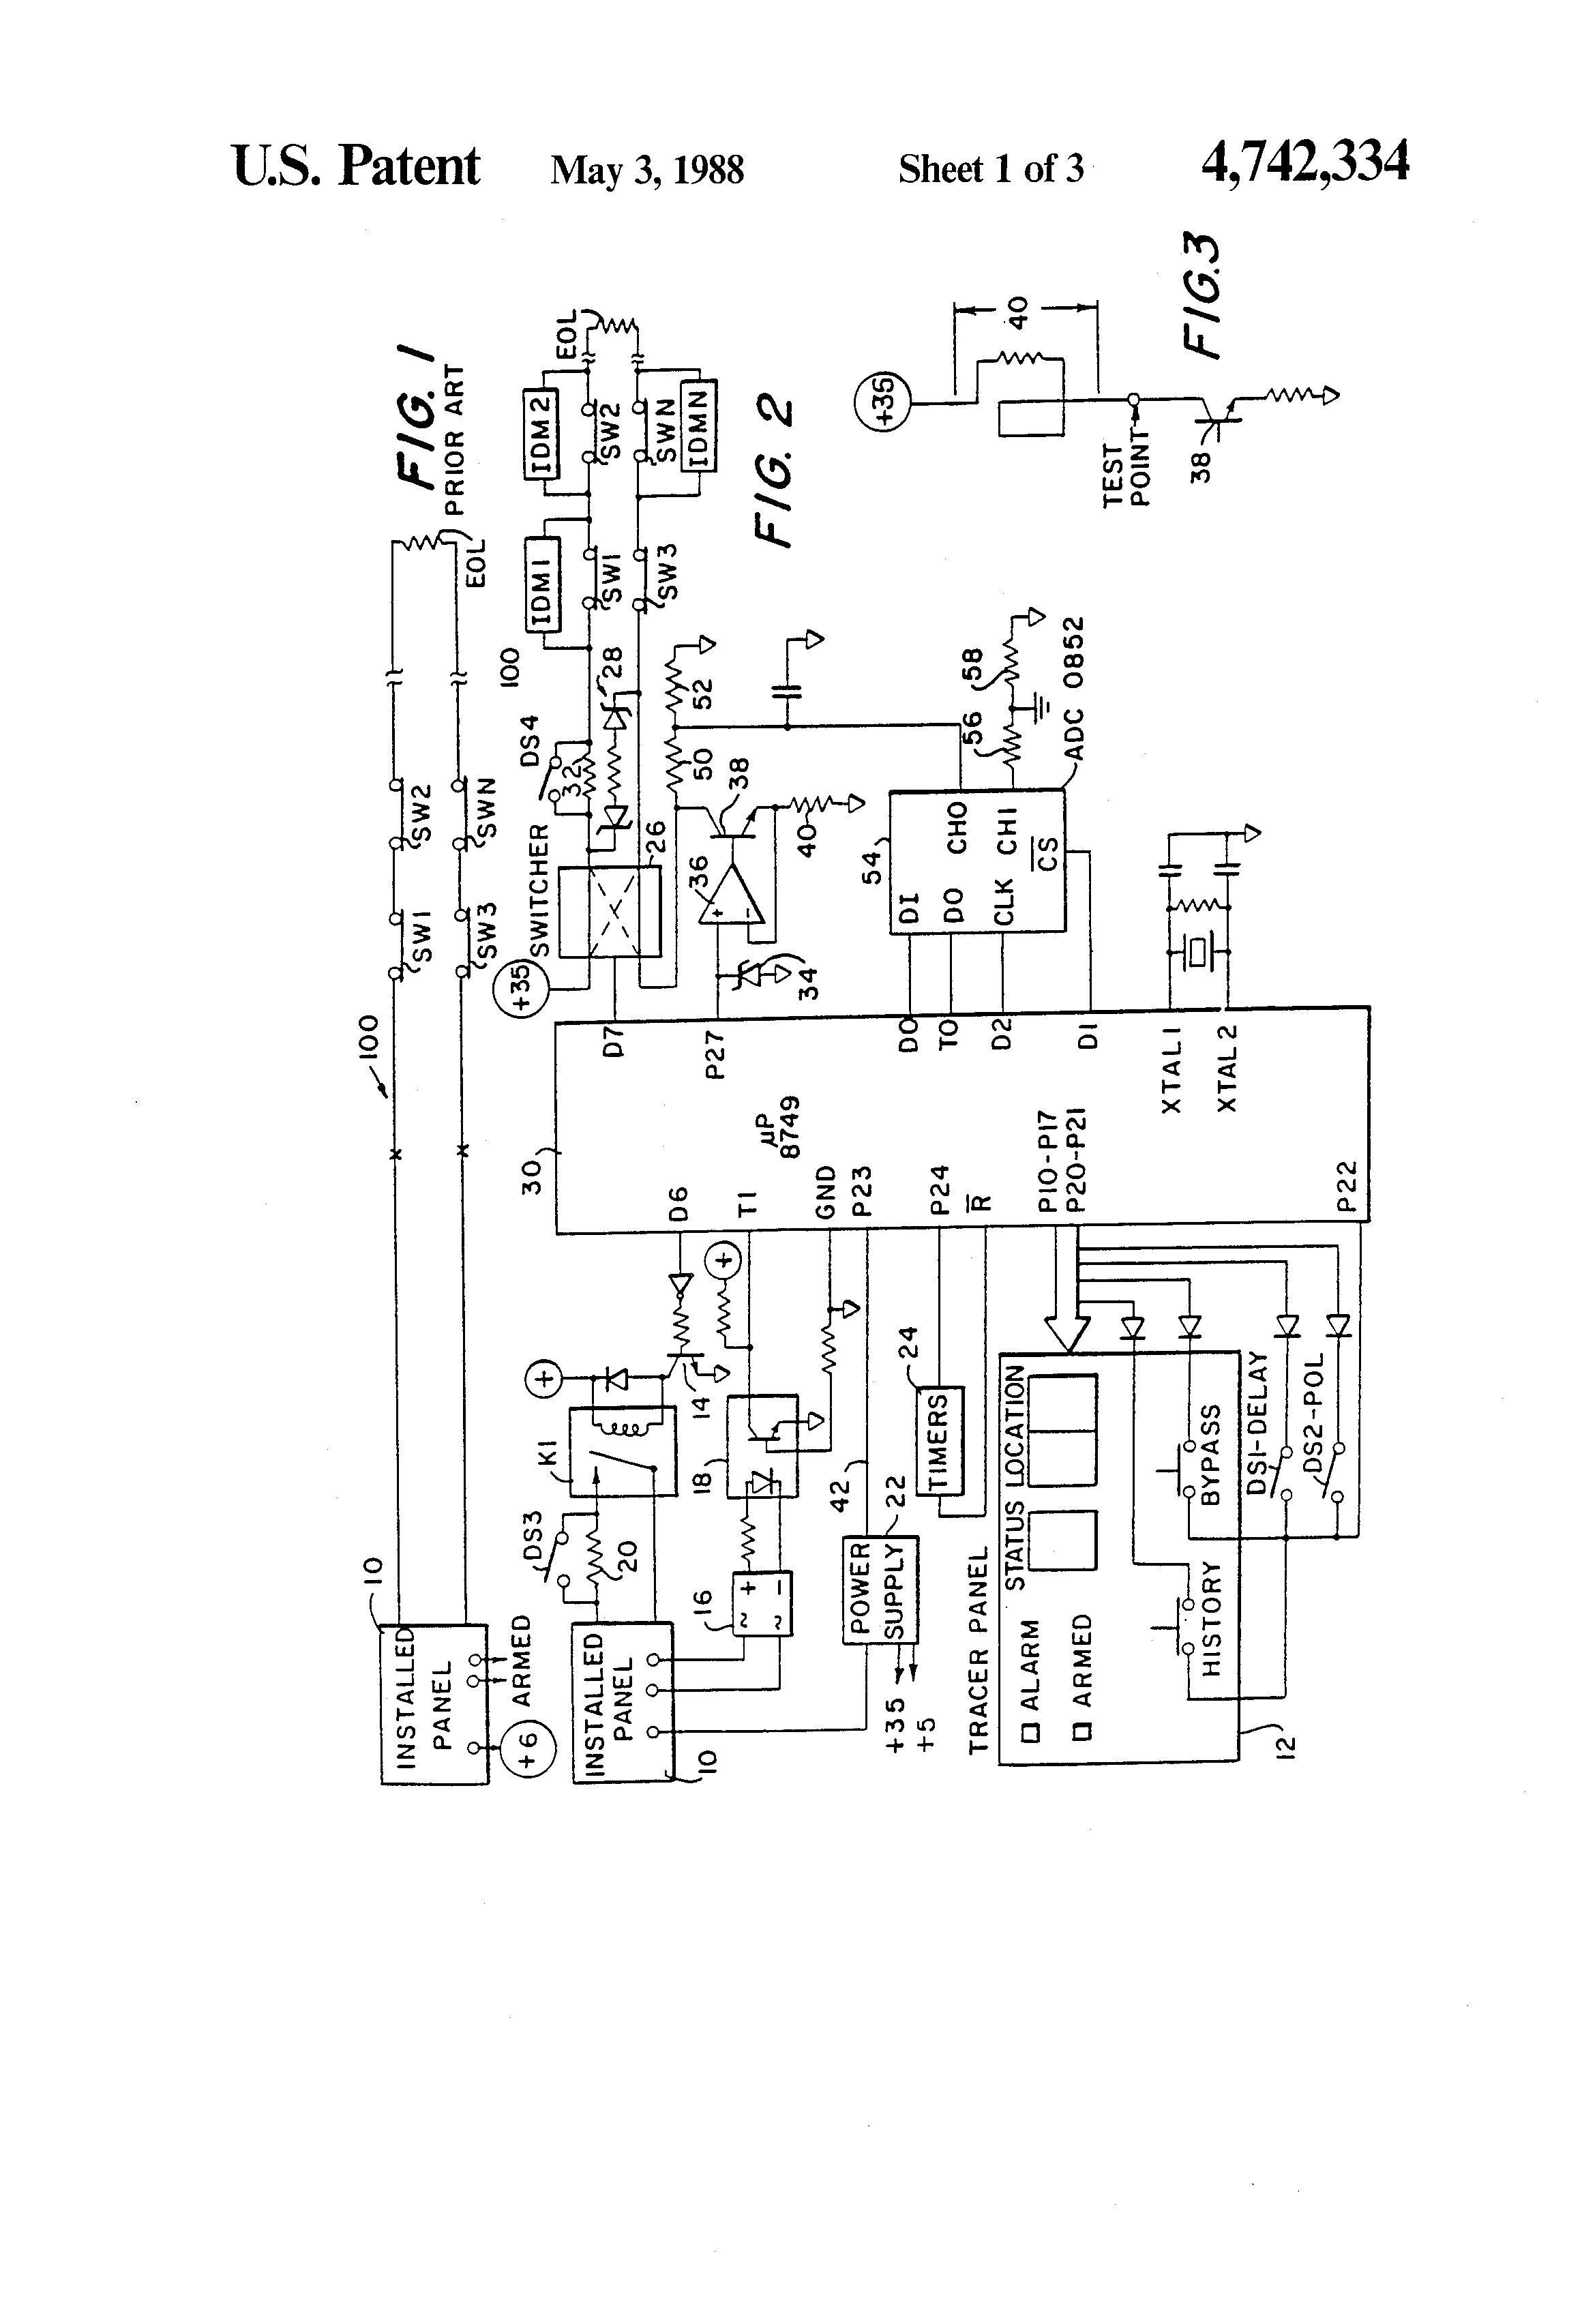 WO2000033065A1 as well Triangular Wave Generator as well US20110001492 moreover Op   Circuit Collection Basic Circuits additionally Index710. on double integrator circuit